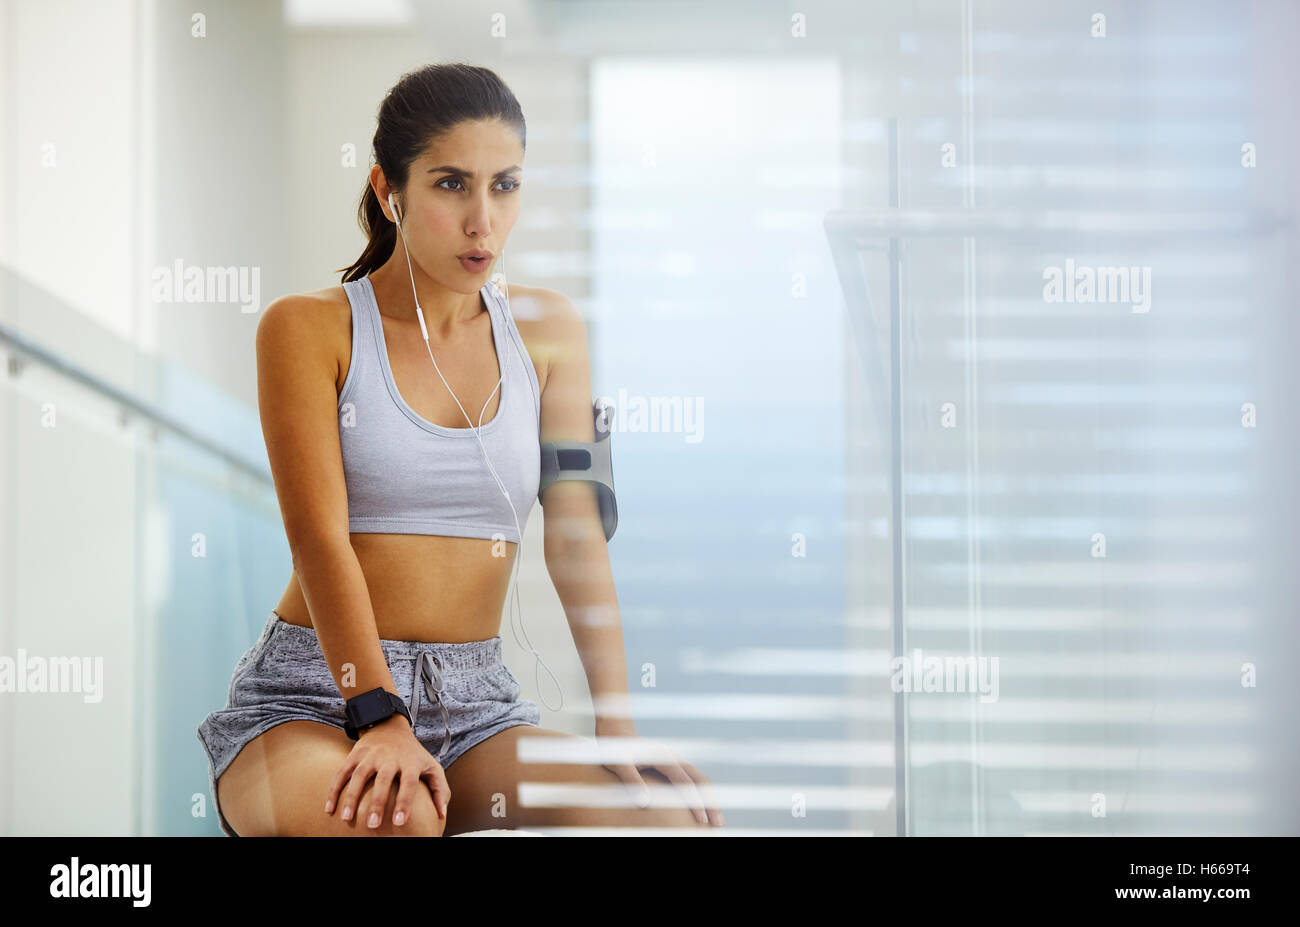 Woman in sports bra and shorts resting listening to music with headphones post workout Stock Photo